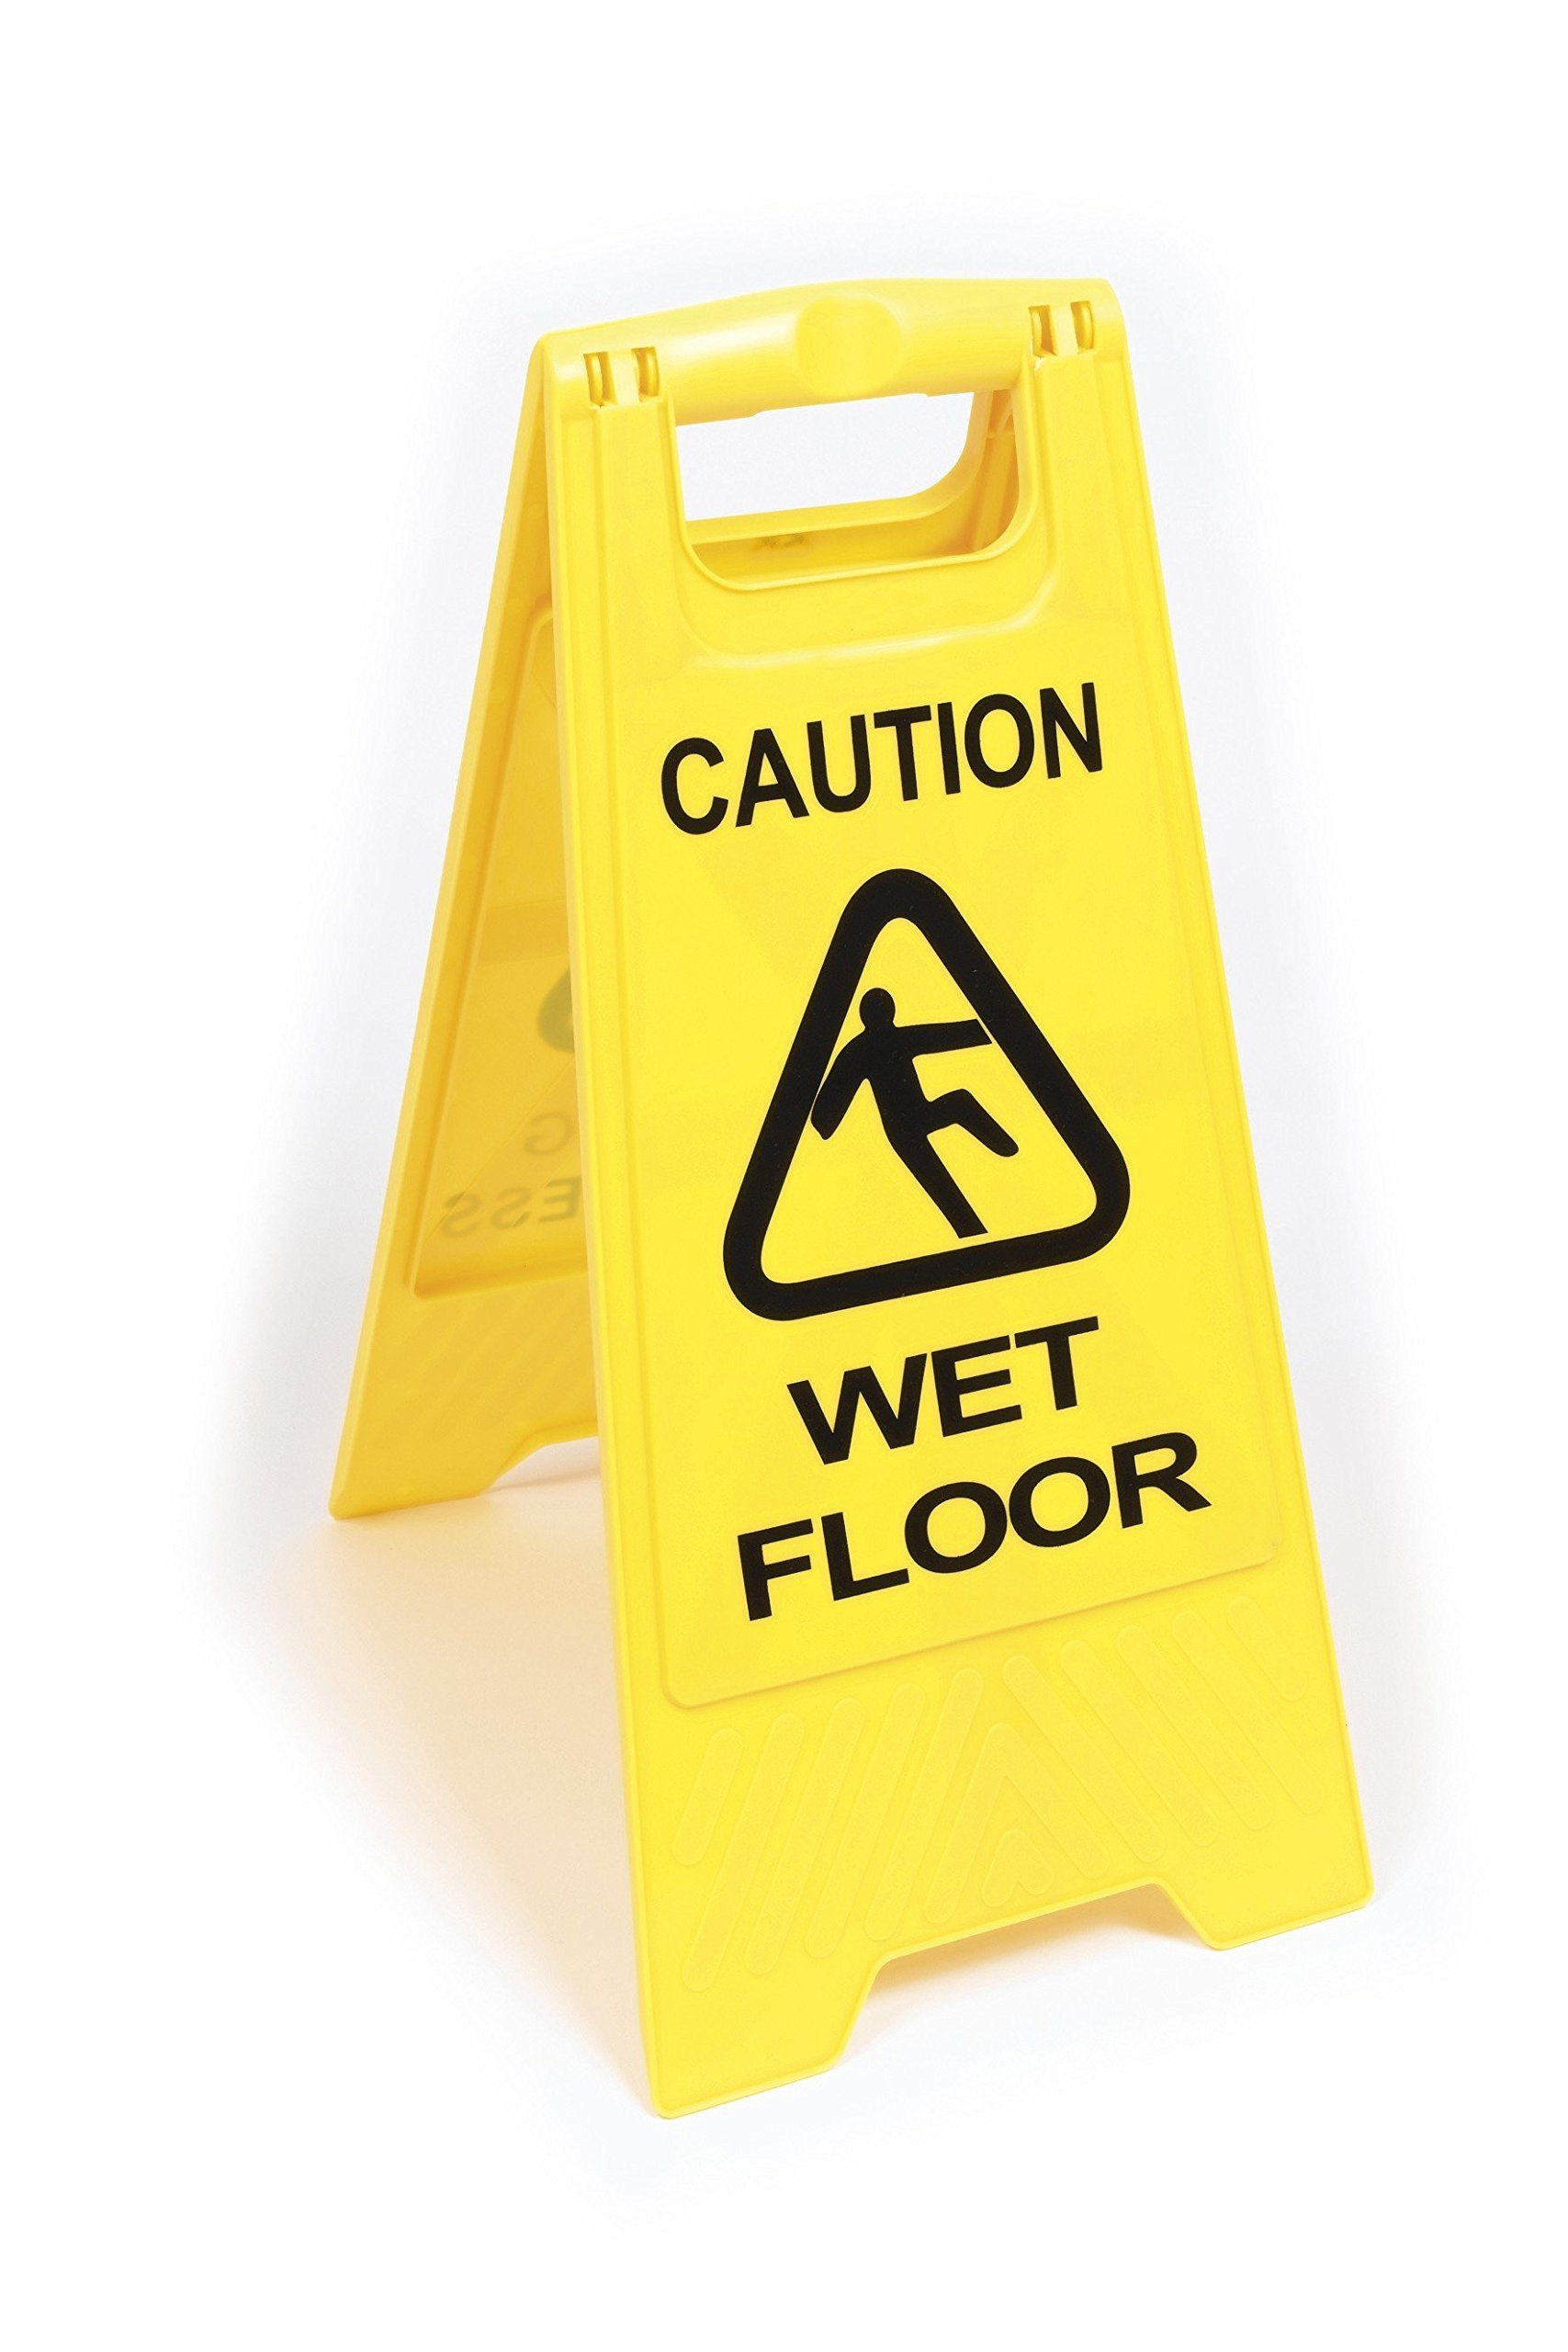 YEX 2-Sided Fold-Out Floor Safety Sign Caution Wet Floor Floor Warning Sign Plastic Folding Sign, Yellow by Dozili